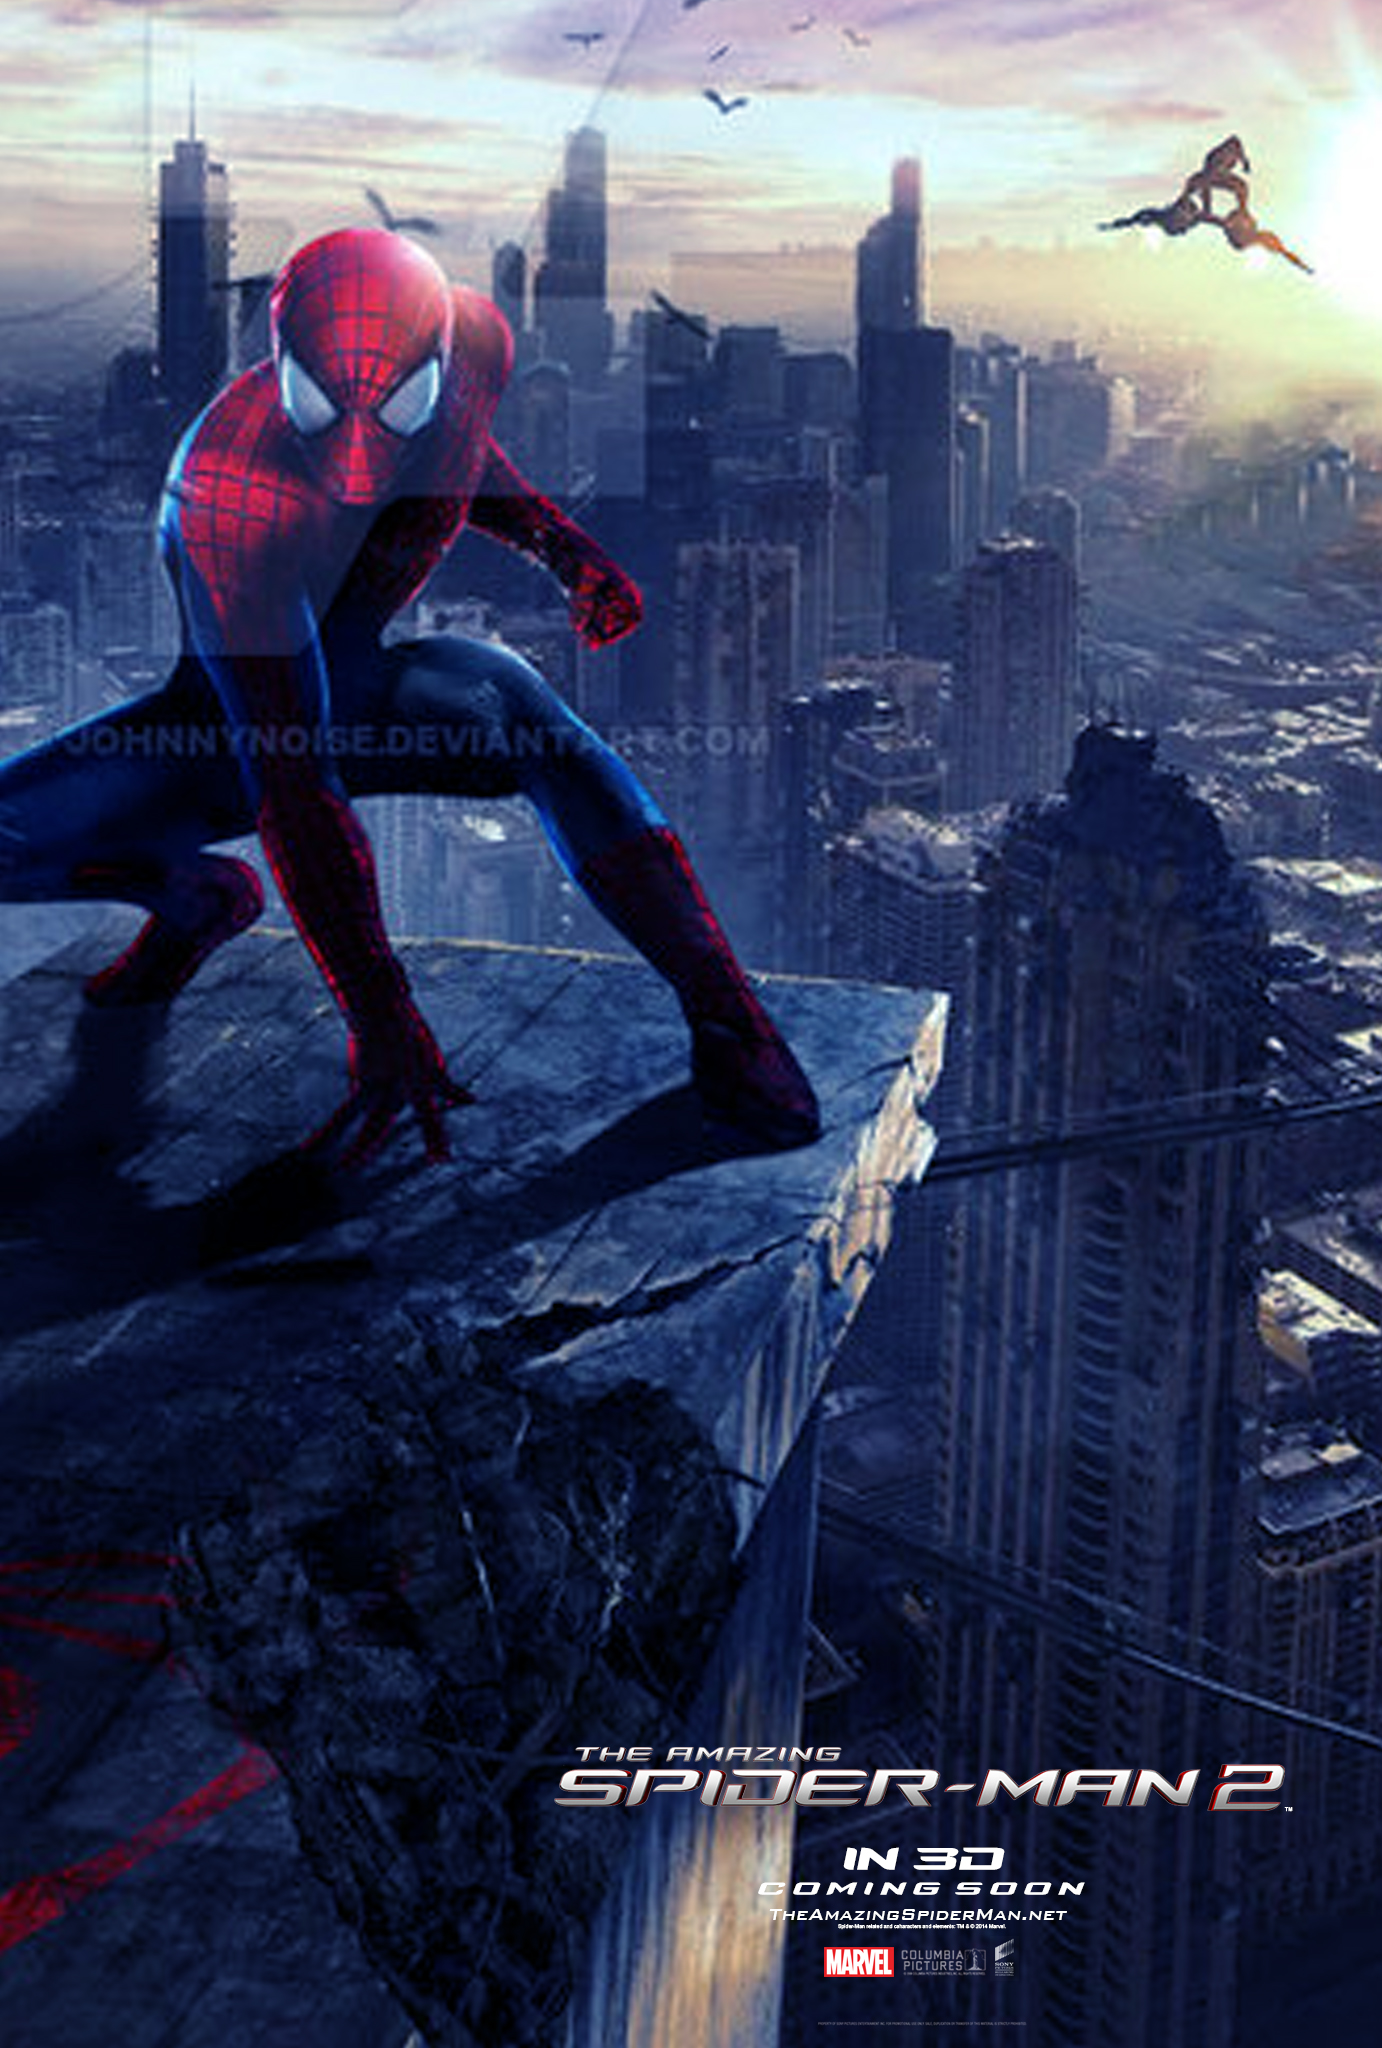 the amazing spider-man 2 (film) | idea wiki | fandom poweredwikia